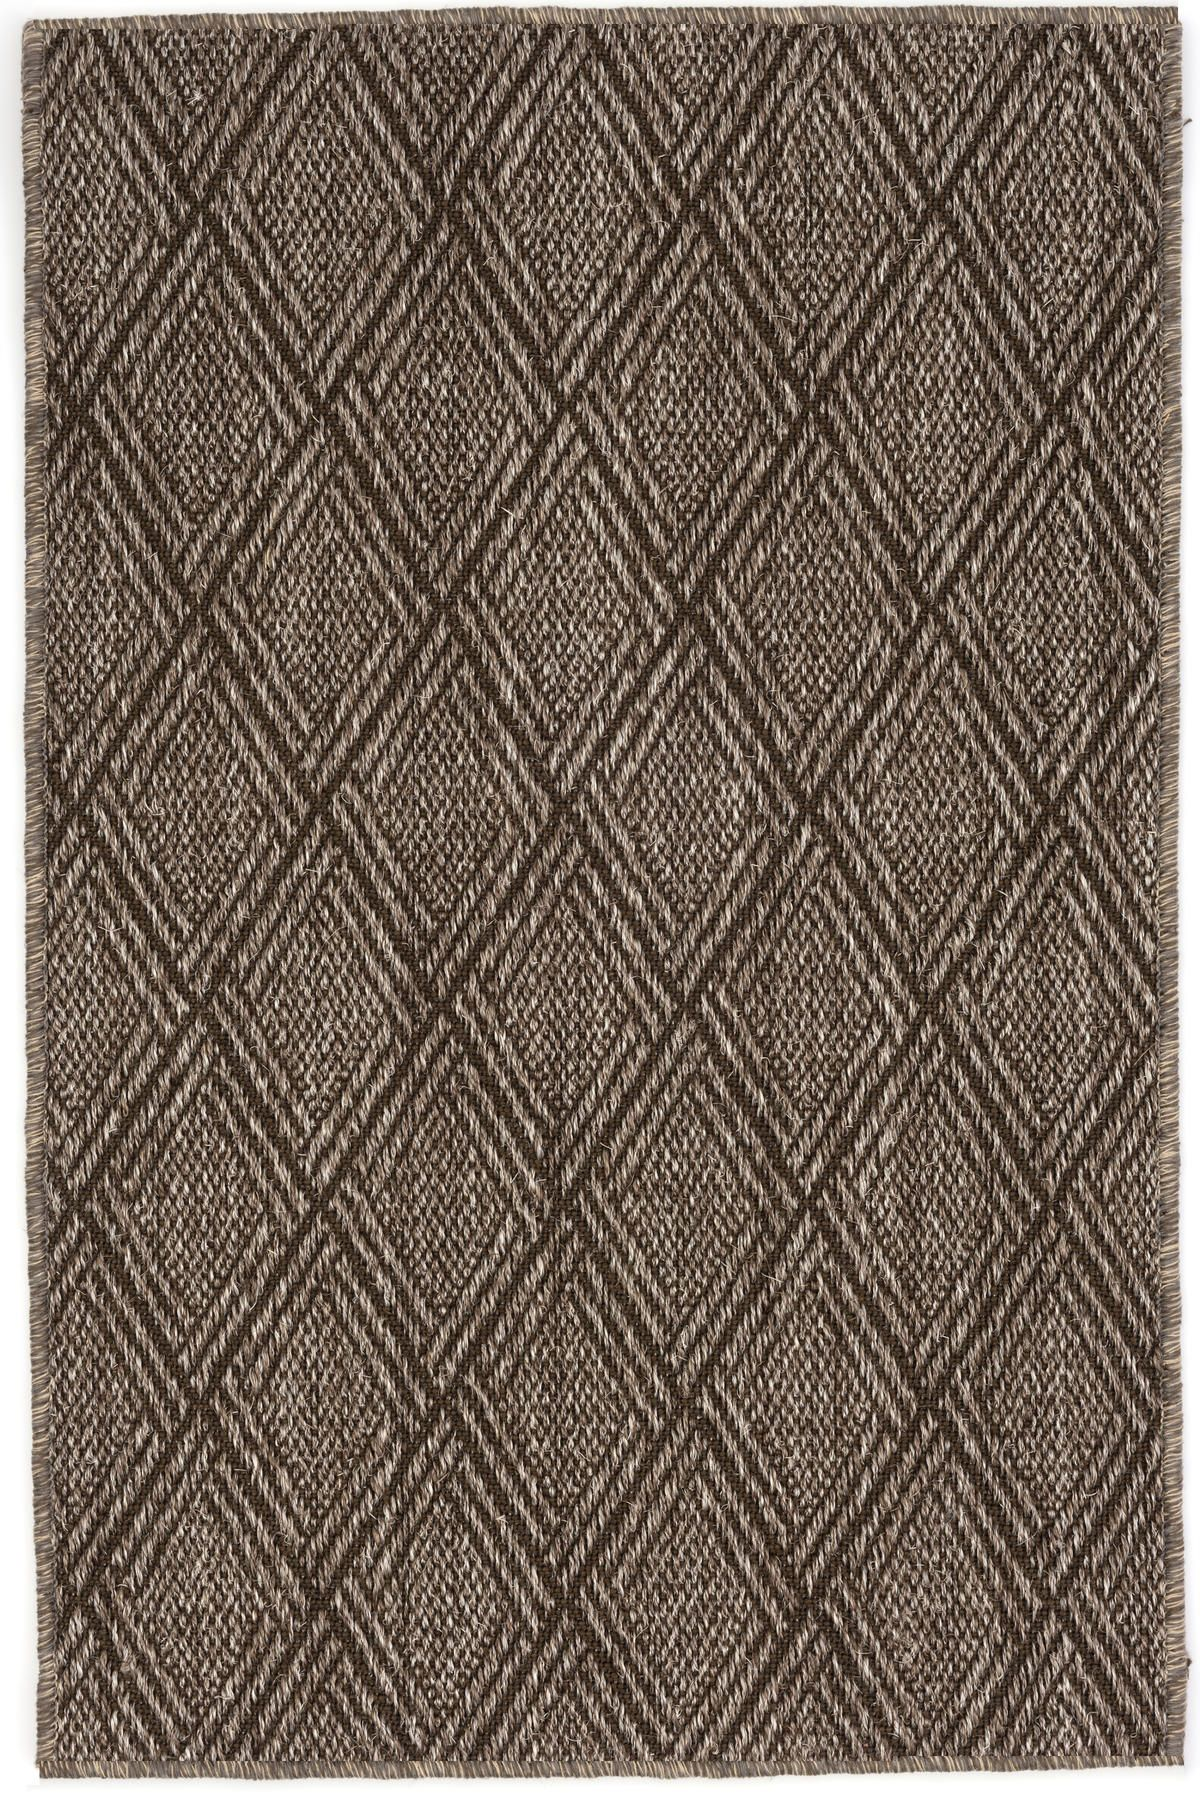 border org borders natural mat polishmigration with sisal orange mats without rug rugs